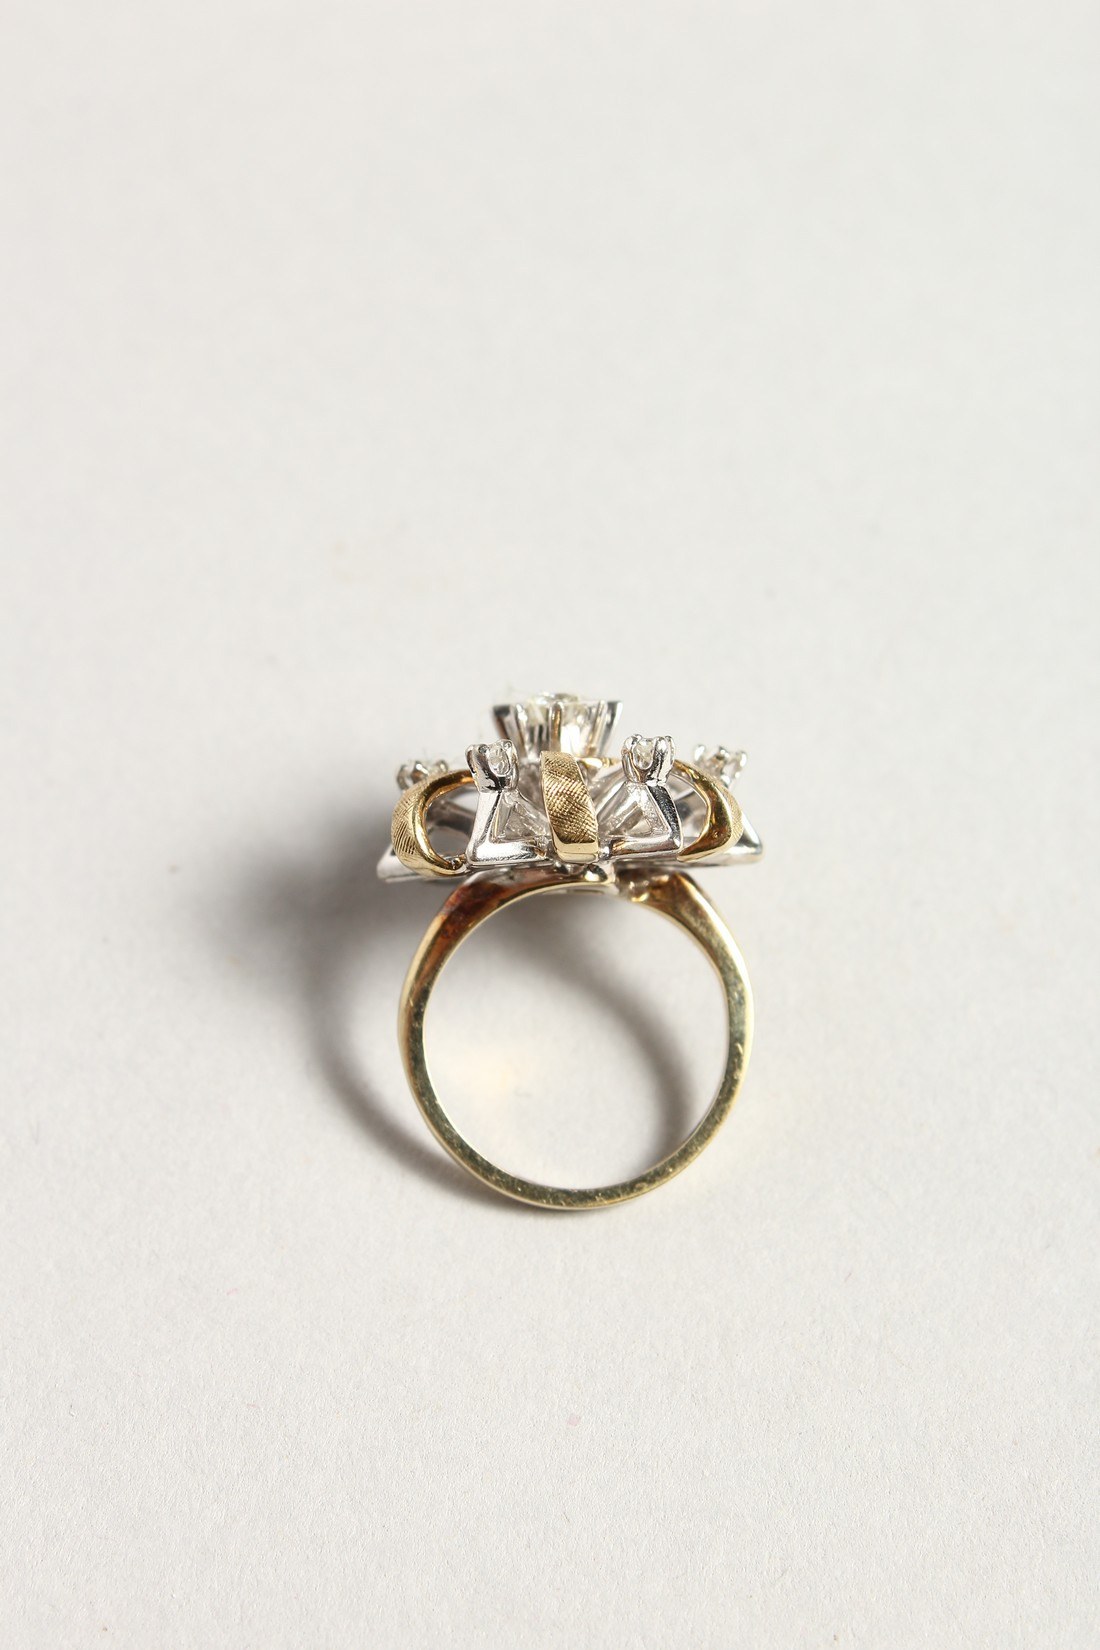 A DIAMOND CLUSTER RING - Image 3 of 6